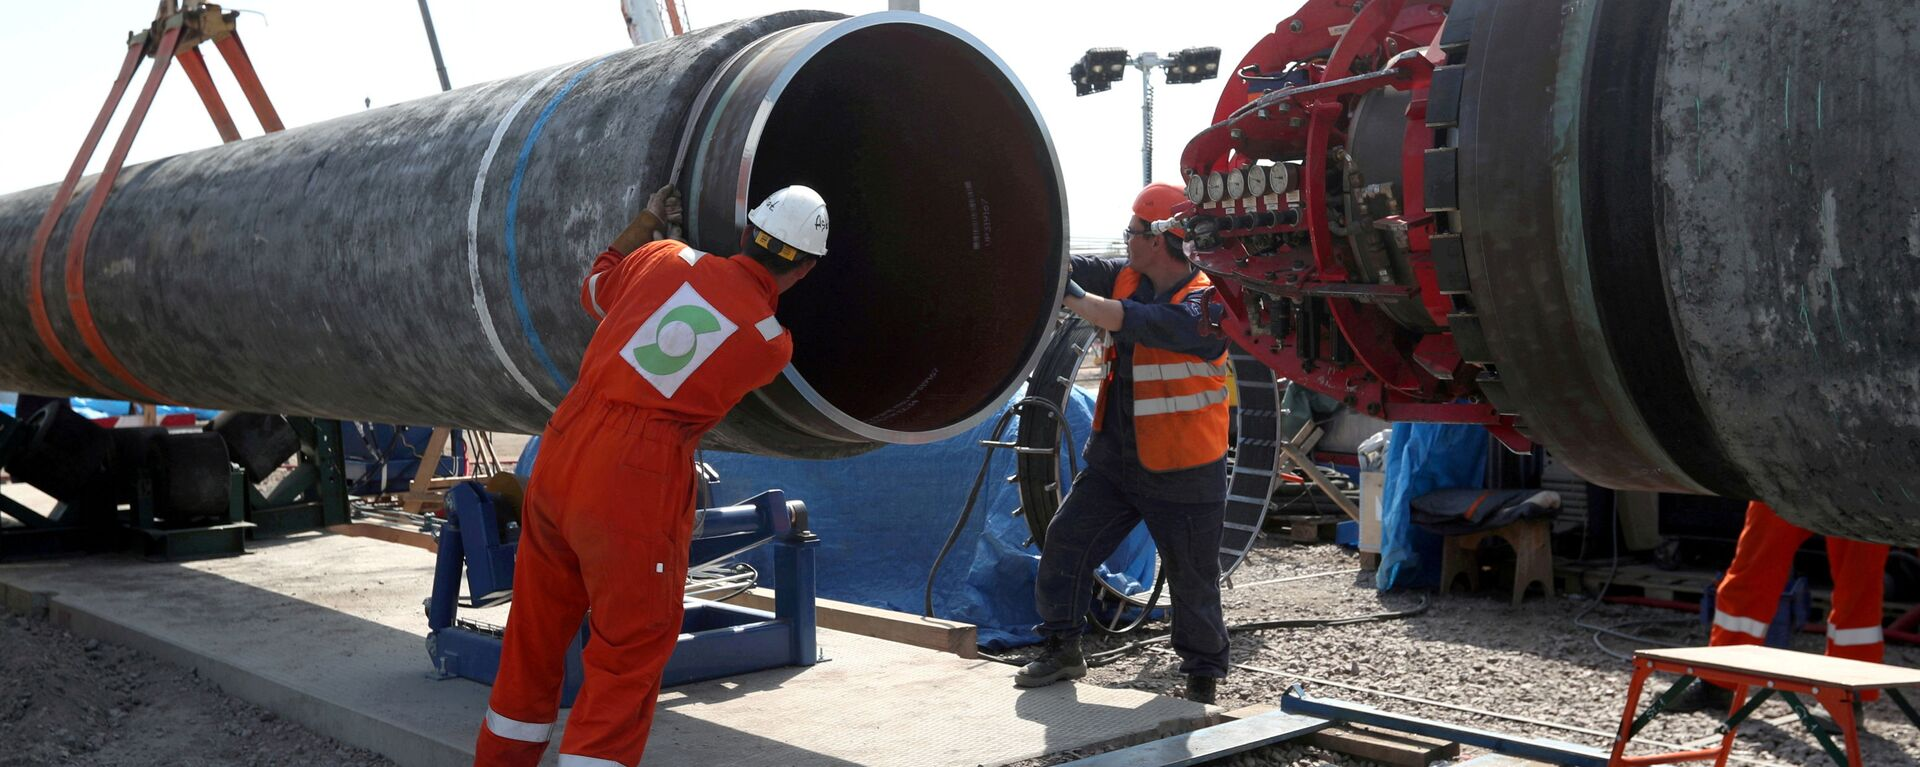 FILE PHOTO: Workers are seen at theconstruction siteof the NordStream2 gas pipeline, near the town of Kingisepp, Leningrad region, Russia, June 5, 2019 - Sputnik International, 1920, 20.08.2021